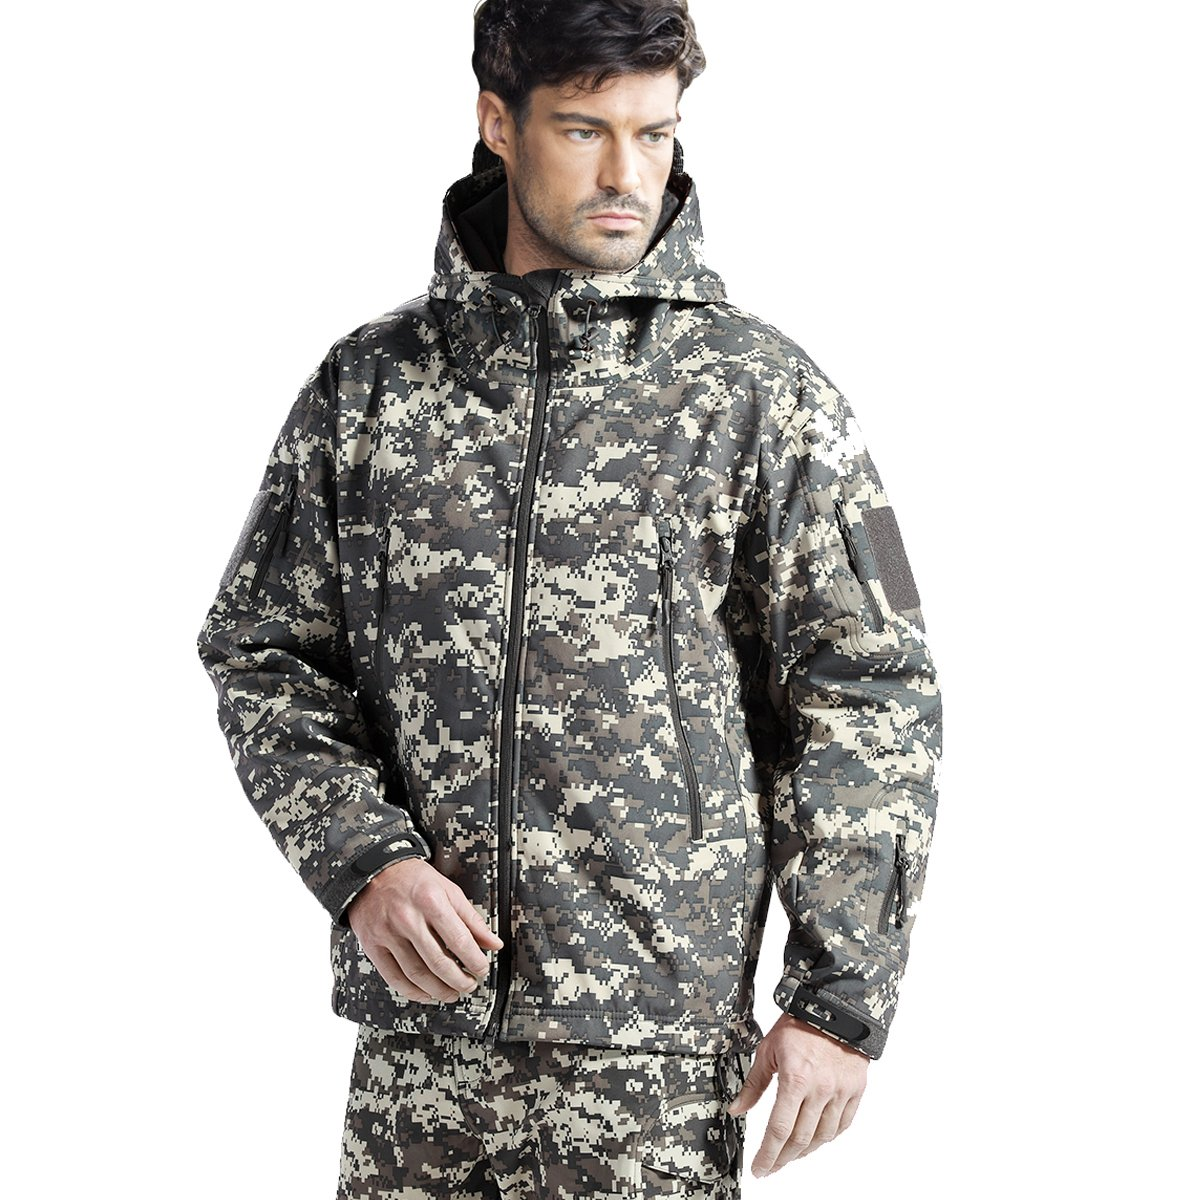 FREE SOLDIER Men's Tactical Jacket Waterproof Army Military Hooded Jacket Softshell Autumn Winter Jacket (ACU Digital M) by FREE SOLDIER